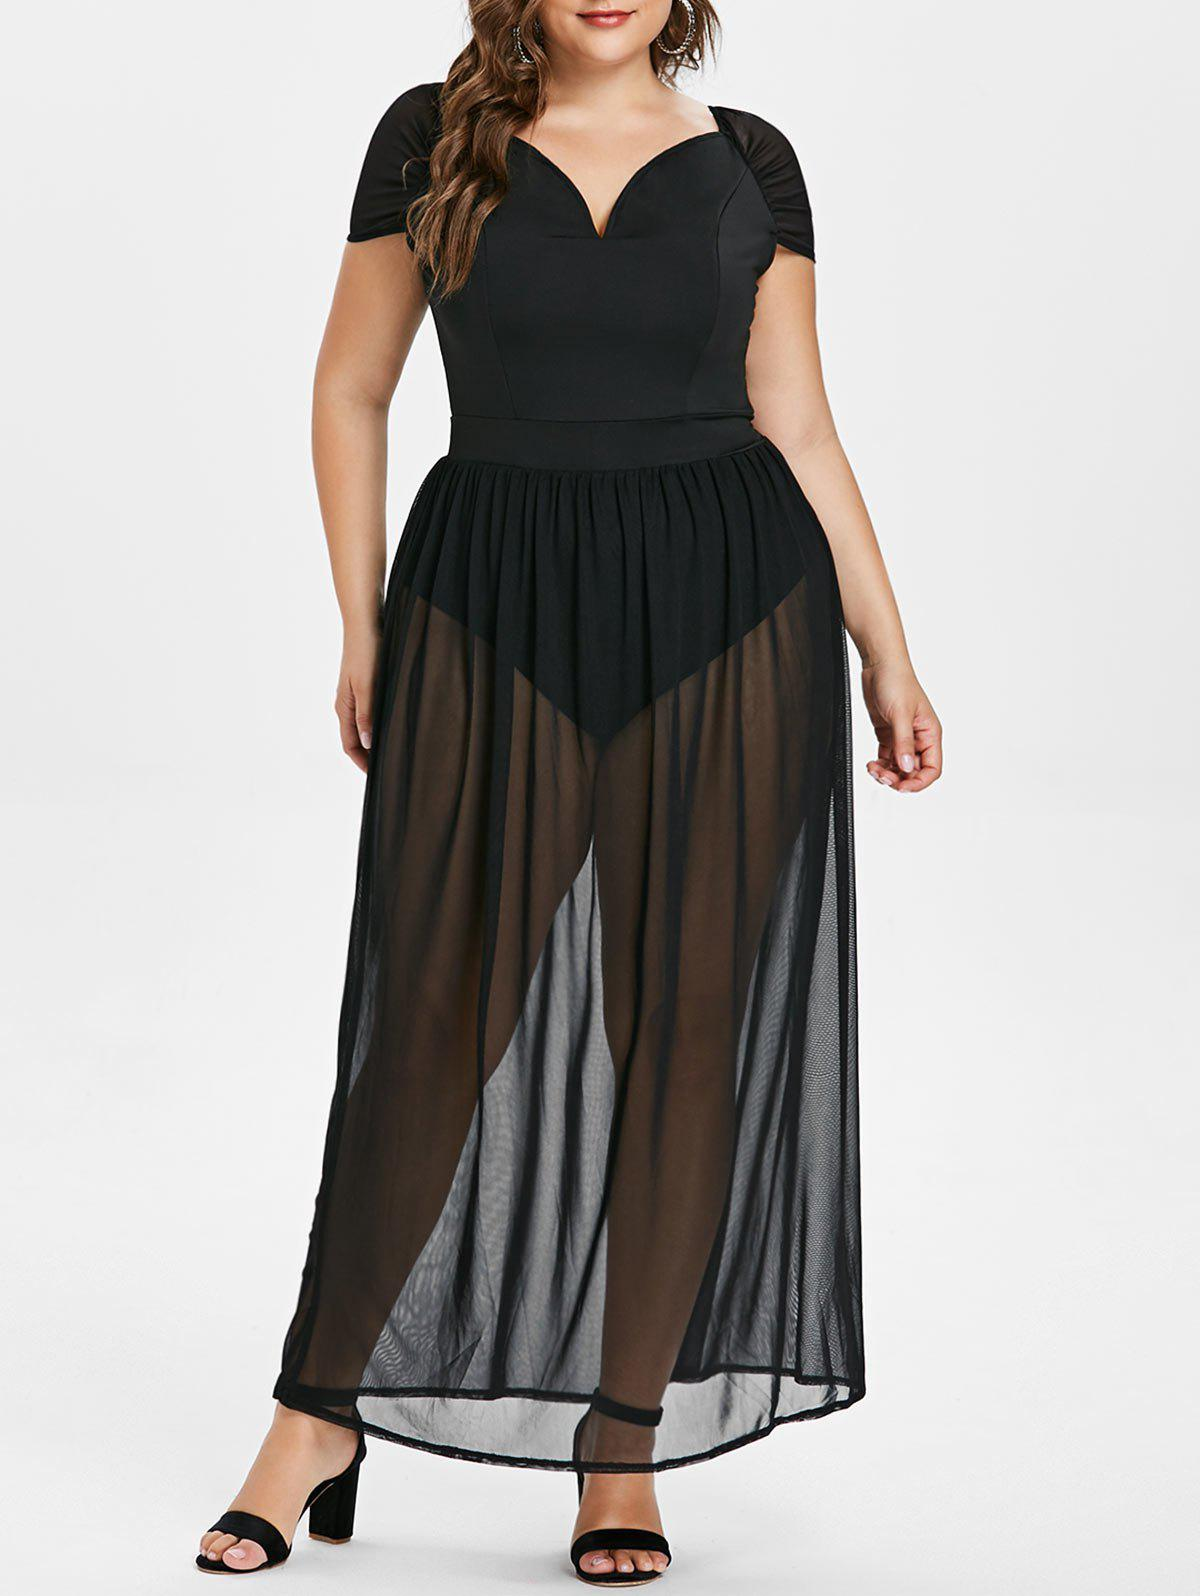 36% OFF] Short Sleeve Plus Size See Through Maxi Dress | Rosegal